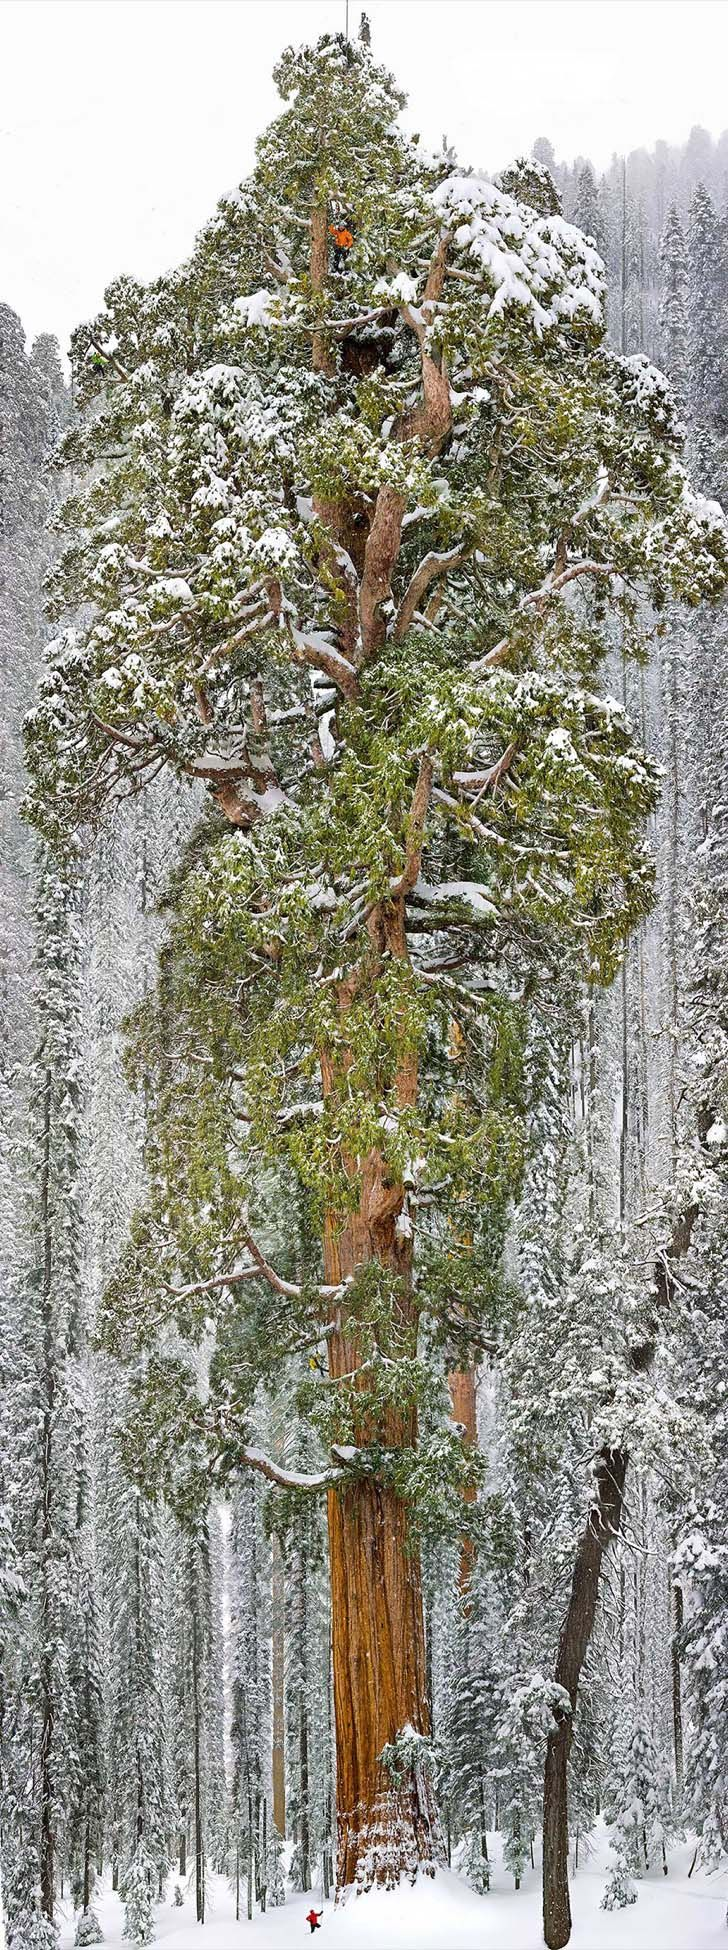 26-of-the-most-magnificent-trees-in-the-world_13